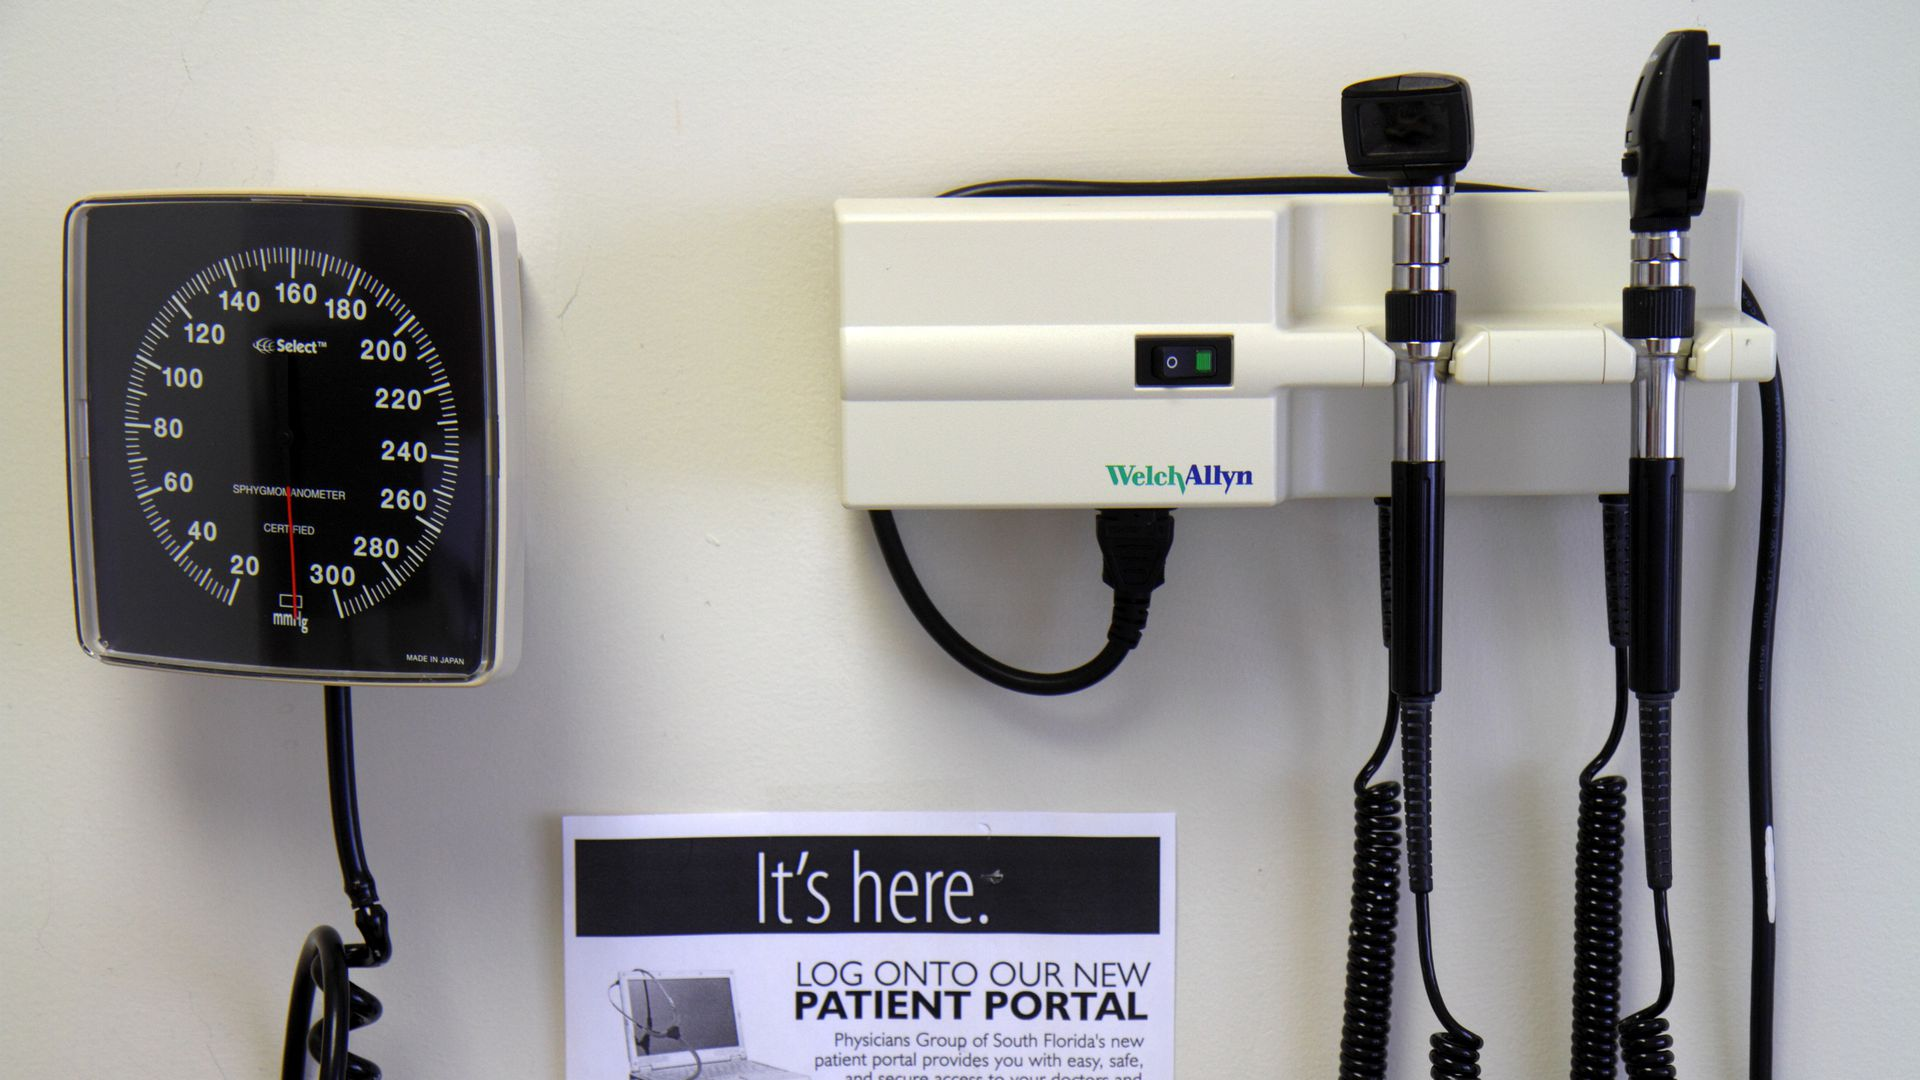 A blood pressure cuff, eye light, and ear tool hang on a wall in a doctor's office.